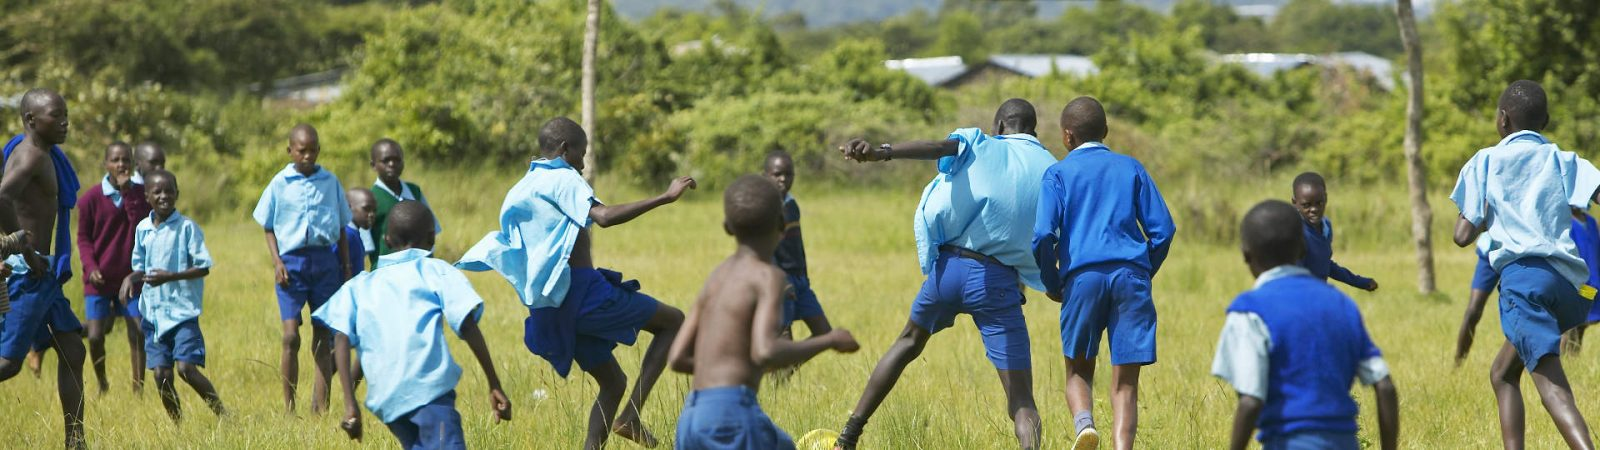 african-kids-playing-soccer